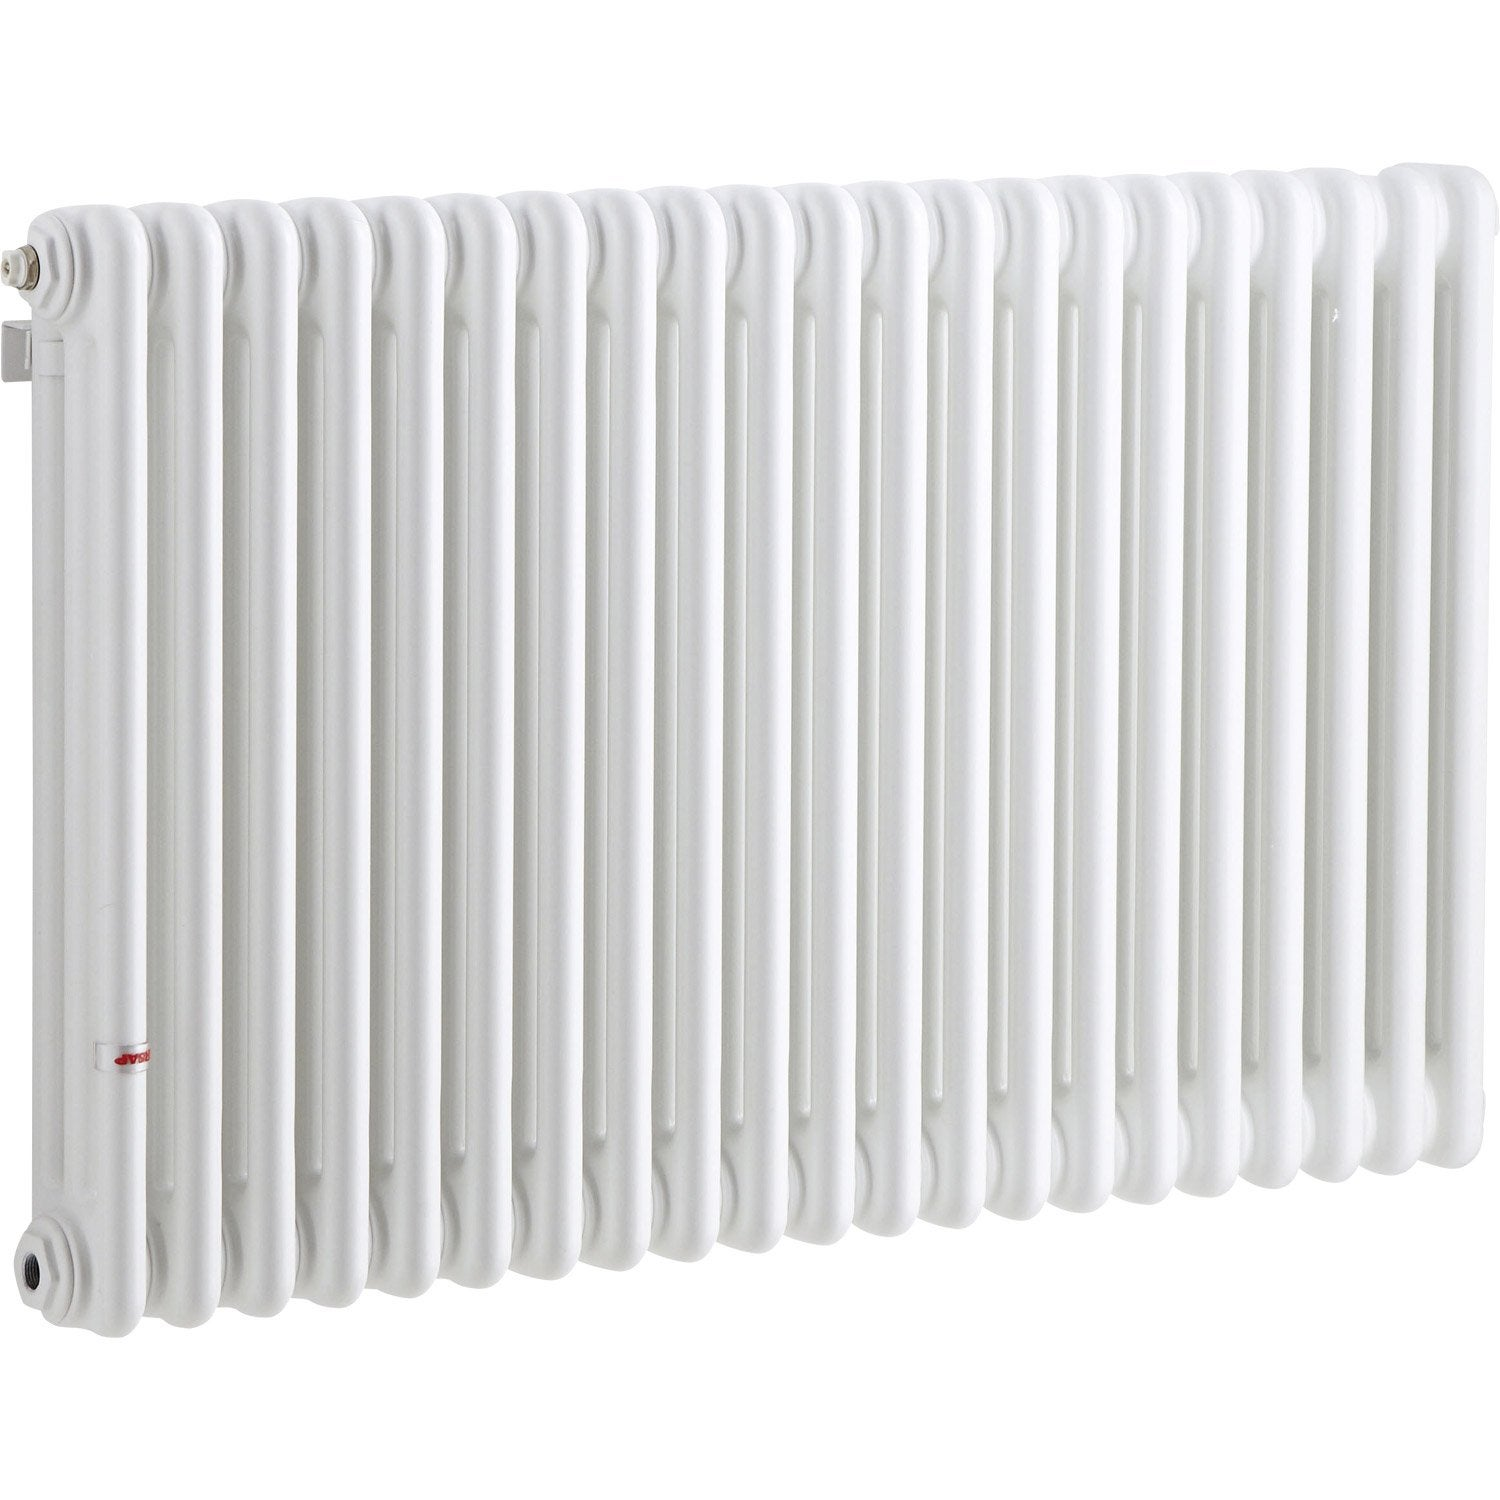 radiateur chauffage central acier tesi 3 blanc 1272w leroy merlin. Black Bedroom Furniture Sets. Home Design Ideas